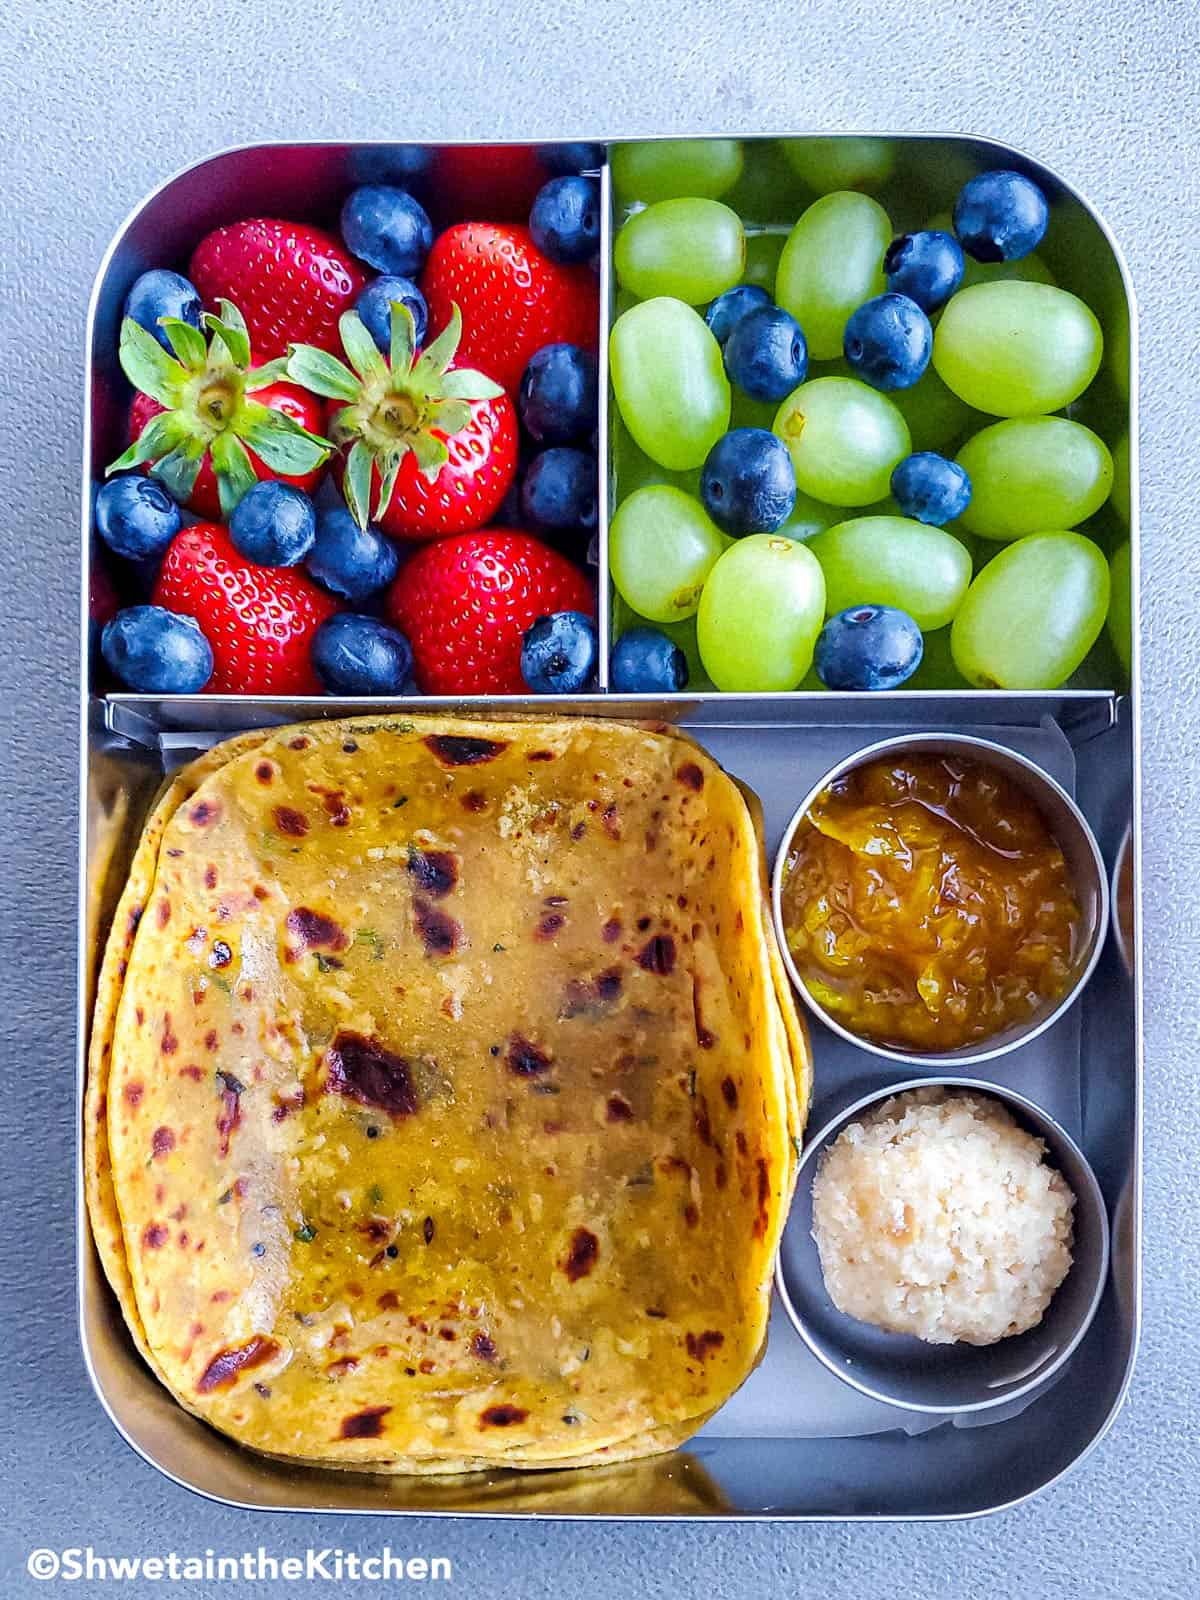 Dal paratha in lunchbox with fruits, chutney and ladoo